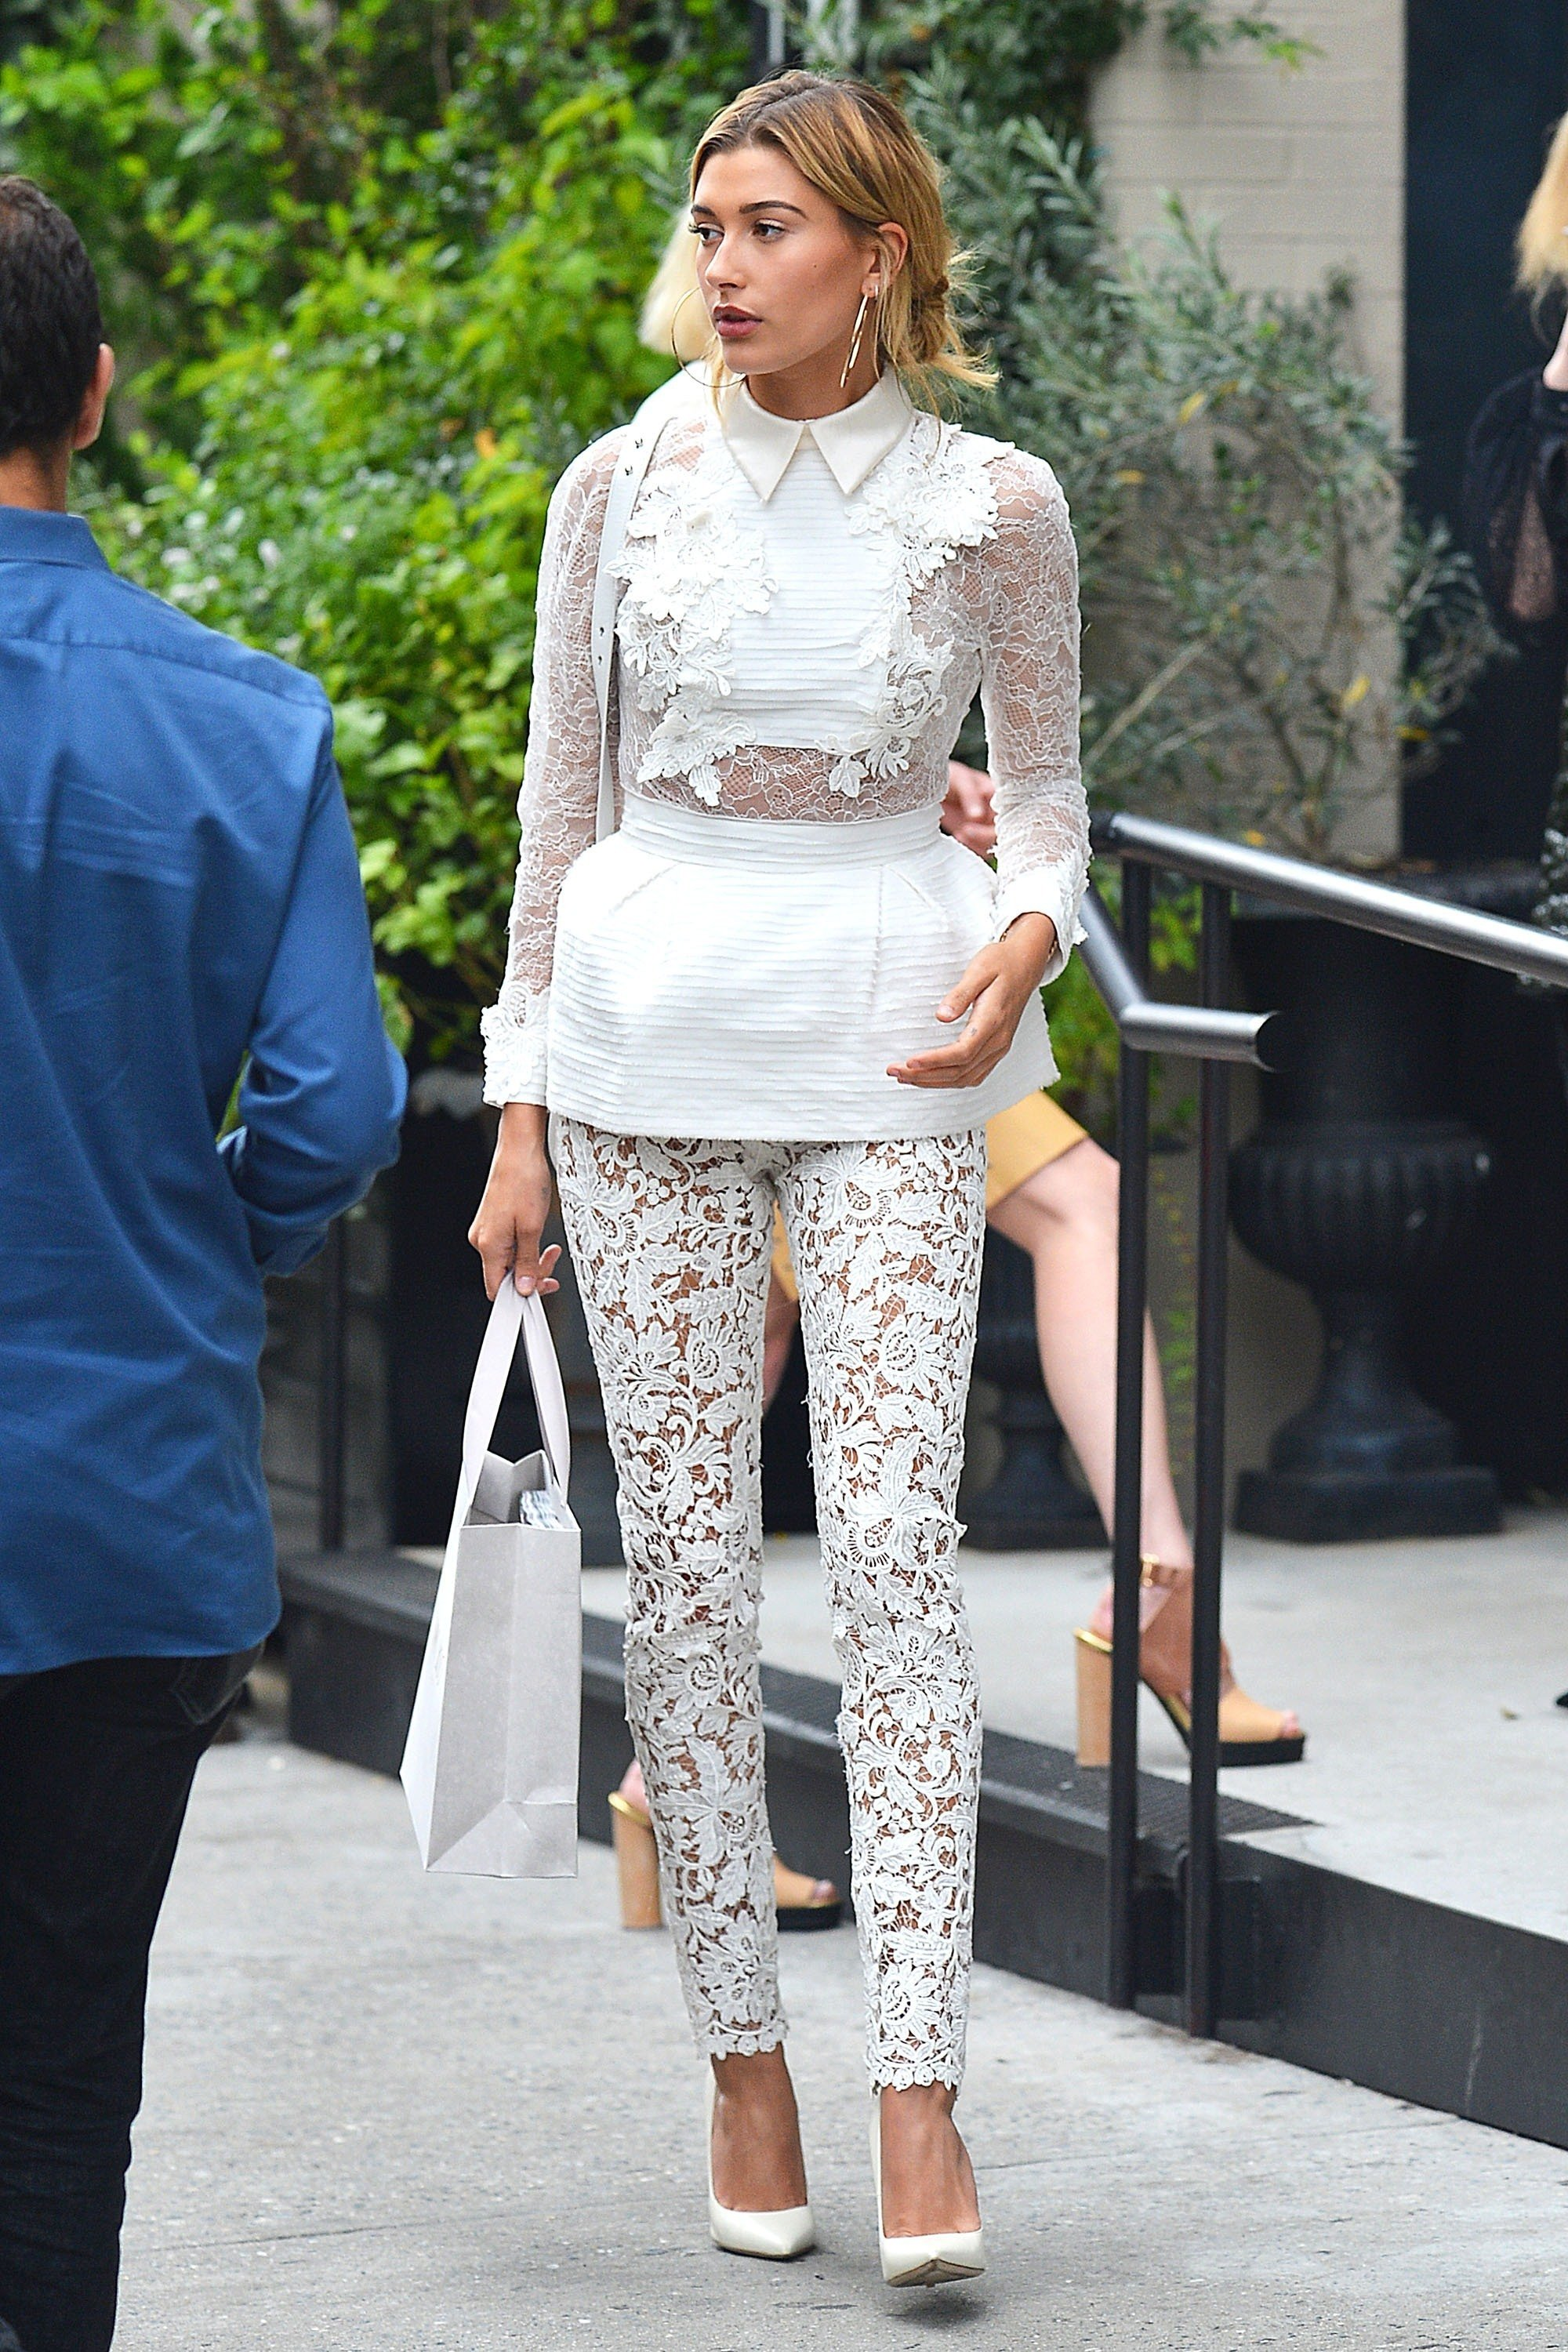 Picture Shows: Hailey Baldwin September 07, 2016 Model Hailey Baldwin is seen leaving Le Coucou Restaurant in Soho, New York City, during Fashion Week. The blonde beauty was carrying a Jimmy Choo carrier bag and rocking a racy, see-through lace ensemble with matching white pumps. Exclusive UK RIGHTS ONLY Pictures by : FameFlynet UK © 2016 Tel : +44 (0)20 3551 5049 Email : info@fameflynet.uk.com